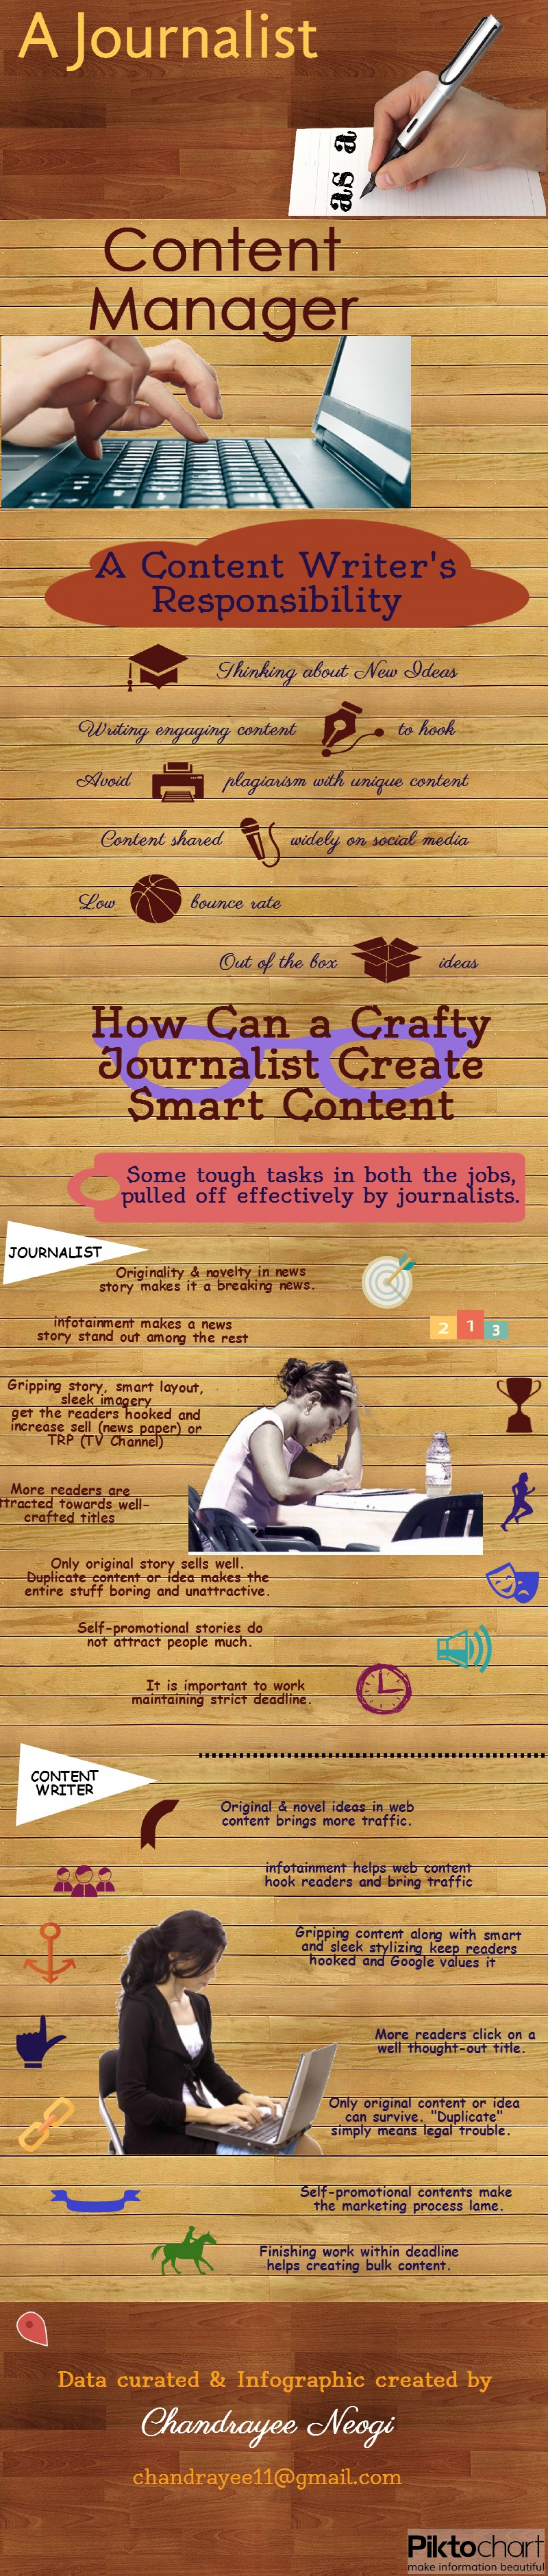 A Journalist as a Content Manager Infographic